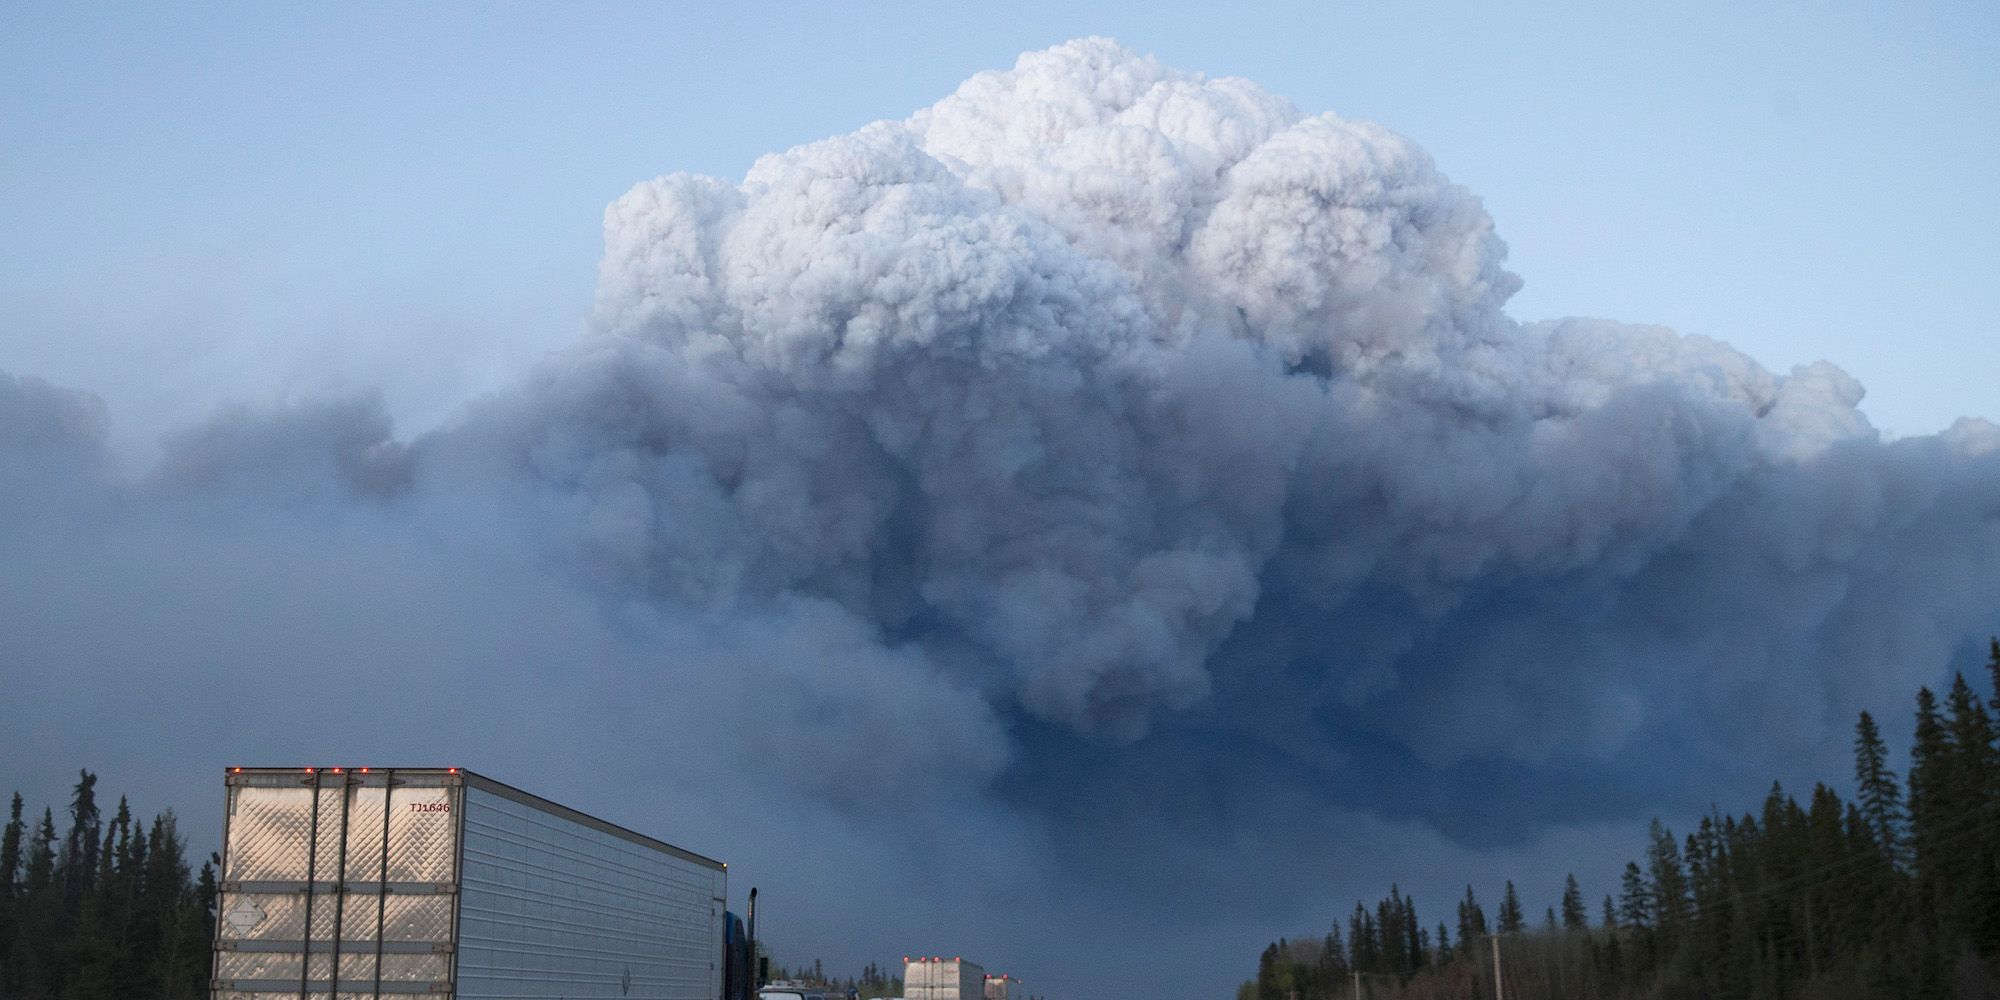 Wildfire Engulfs Fort McMurray Forcing Evacuations Of 80,000 People